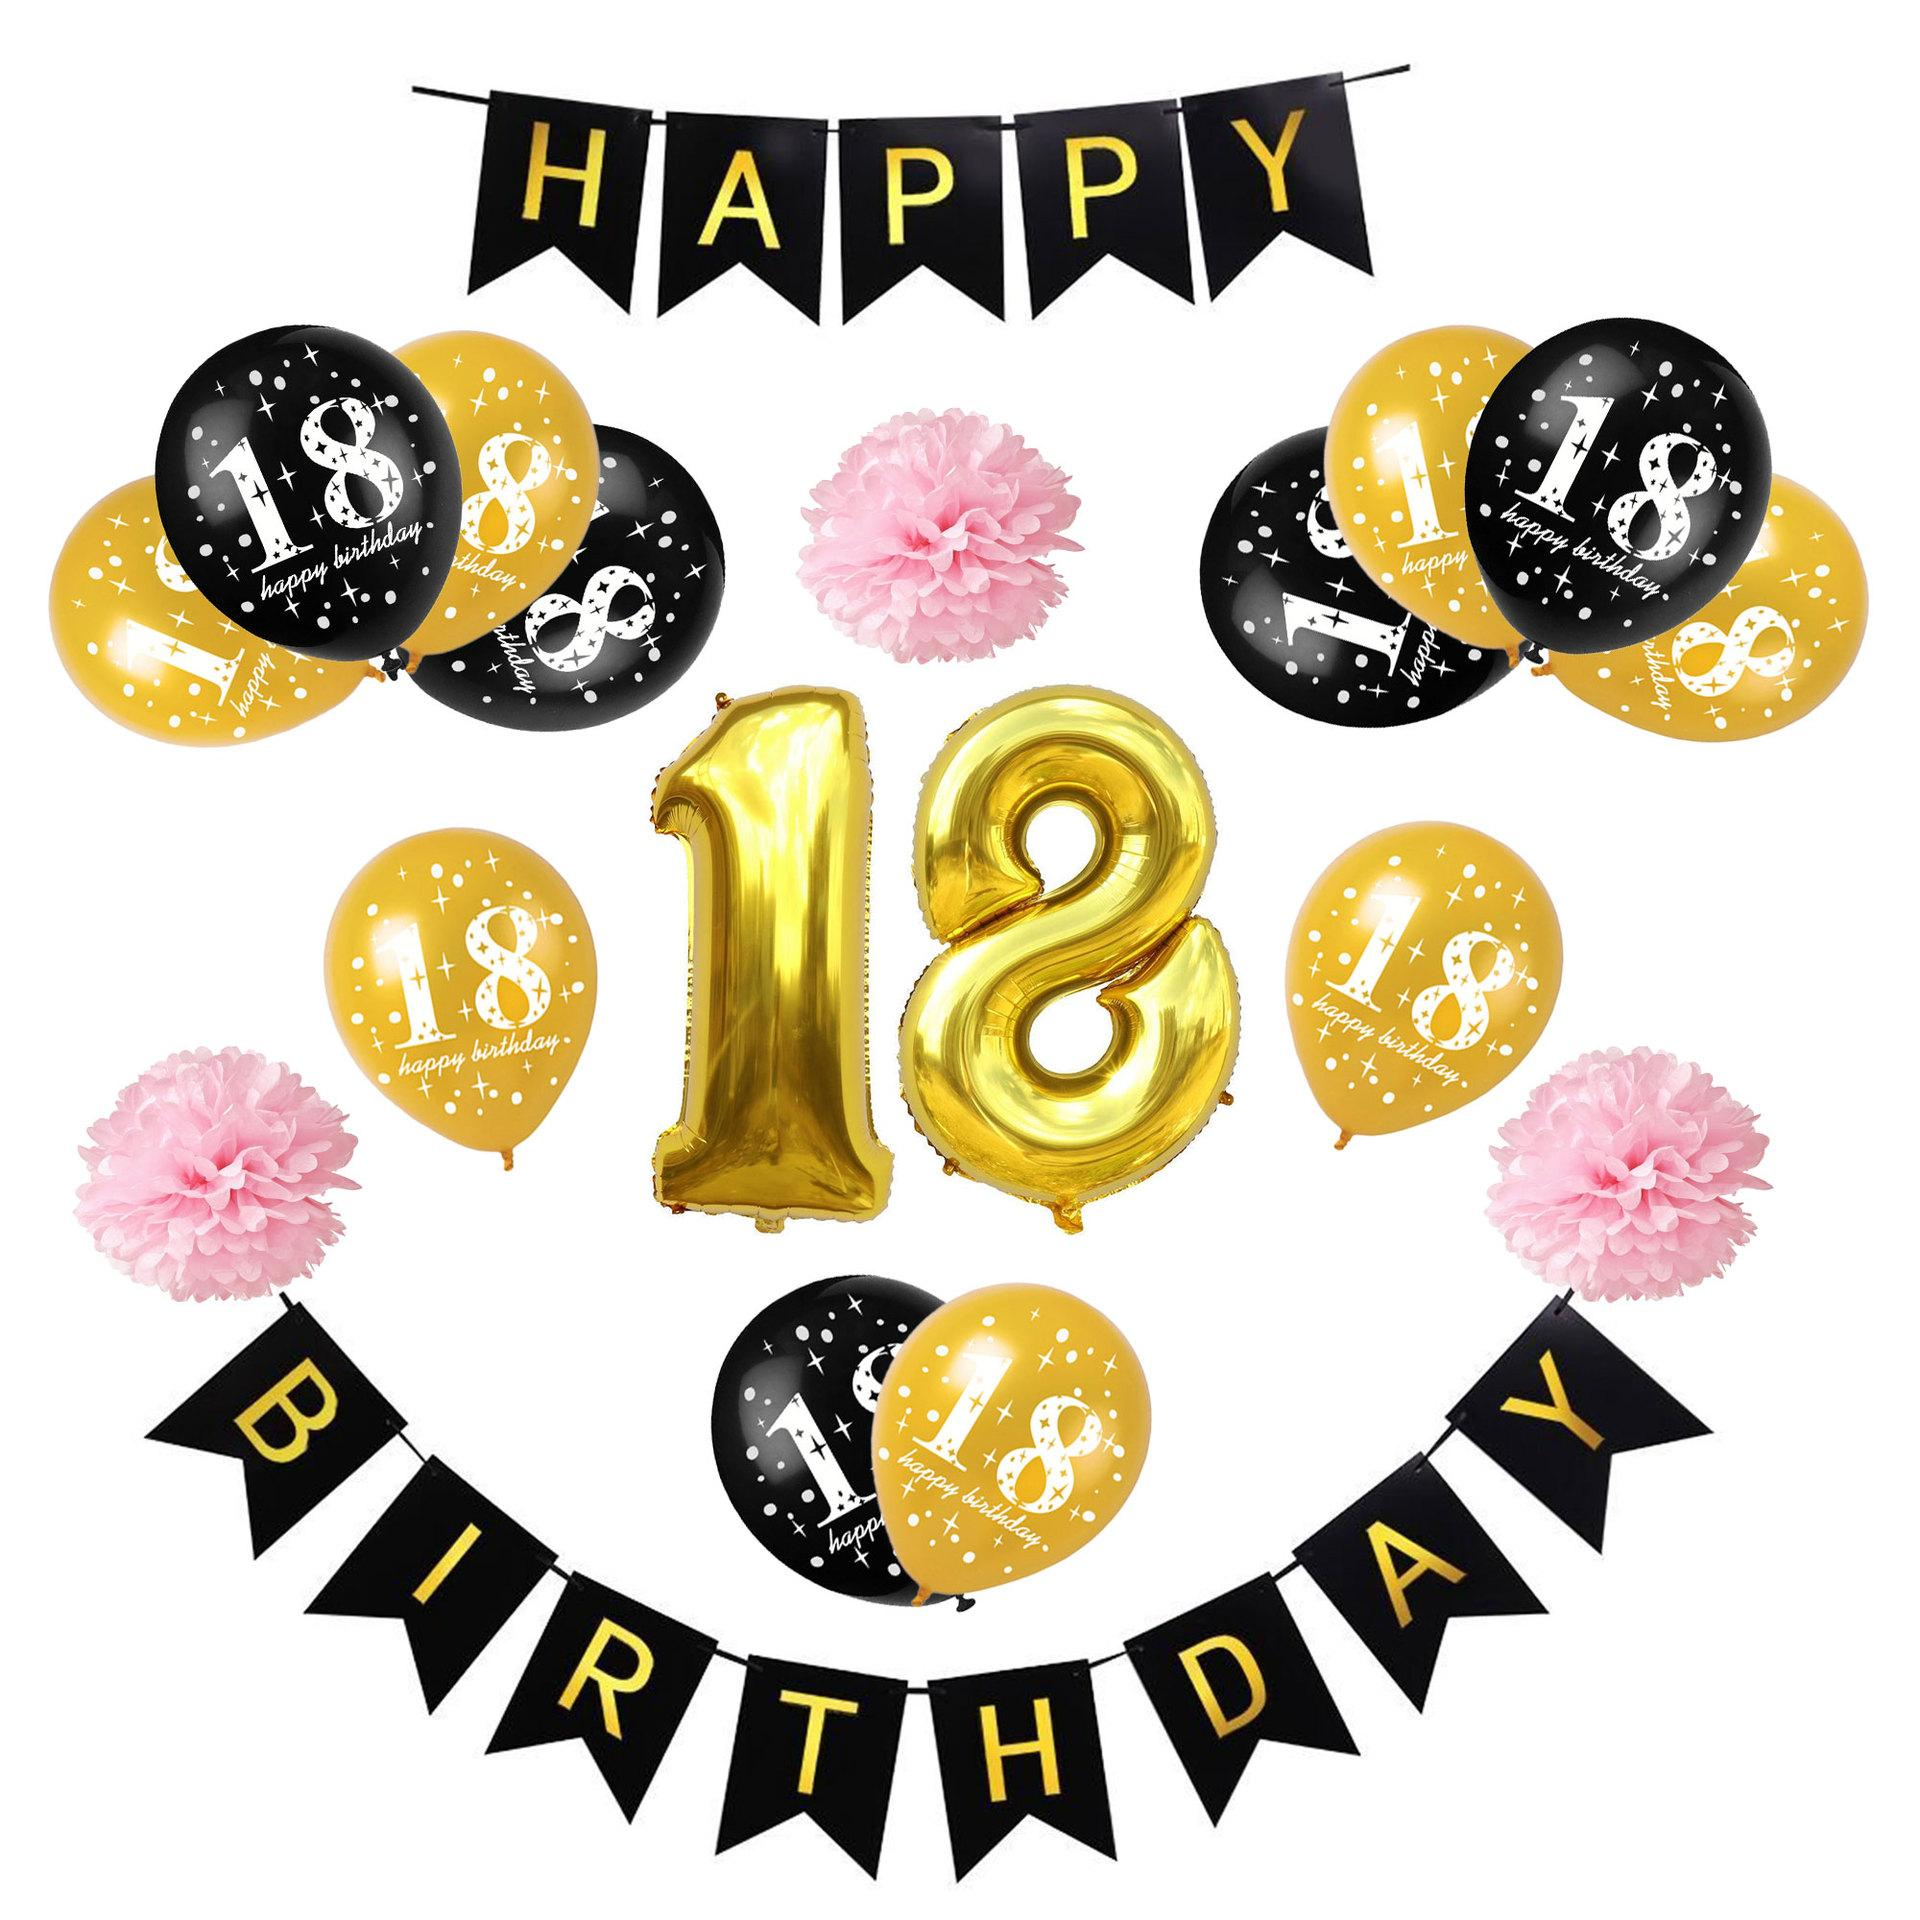 18th Birthday Party Decorations Gold Black Balloon Foil Digital